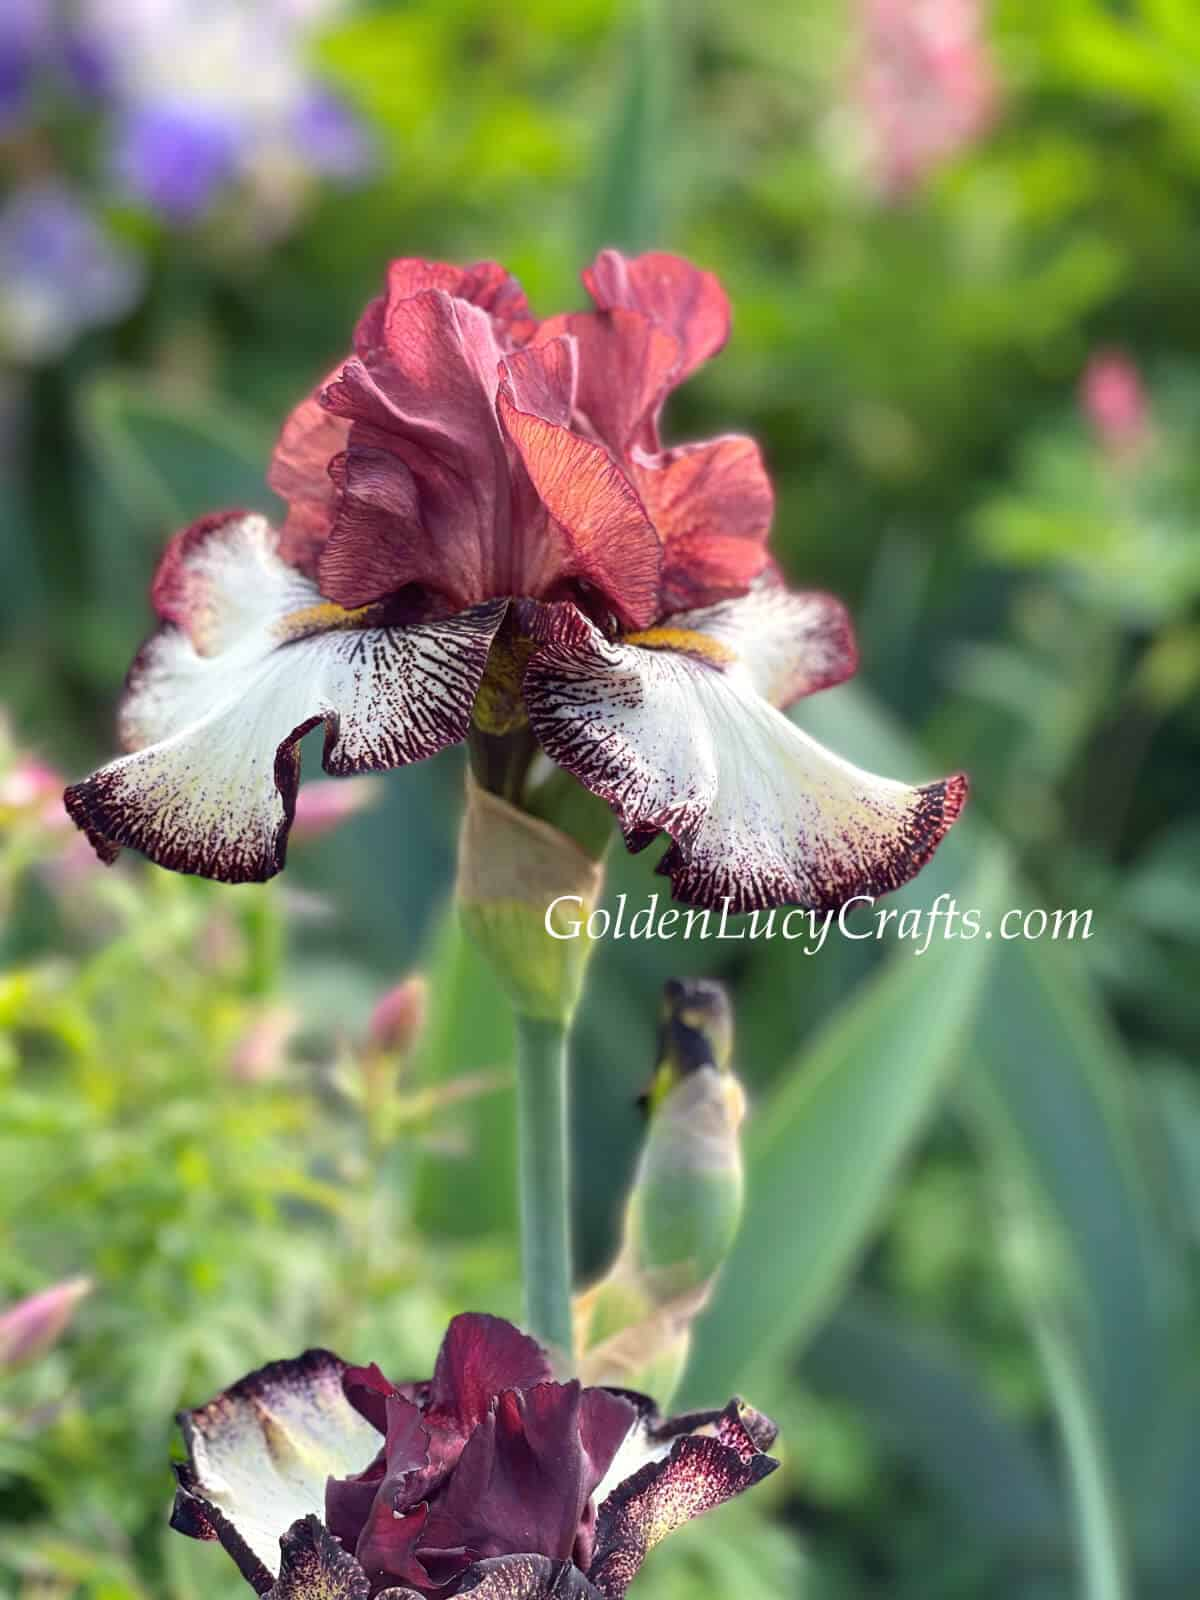 Iris in rusted red color.